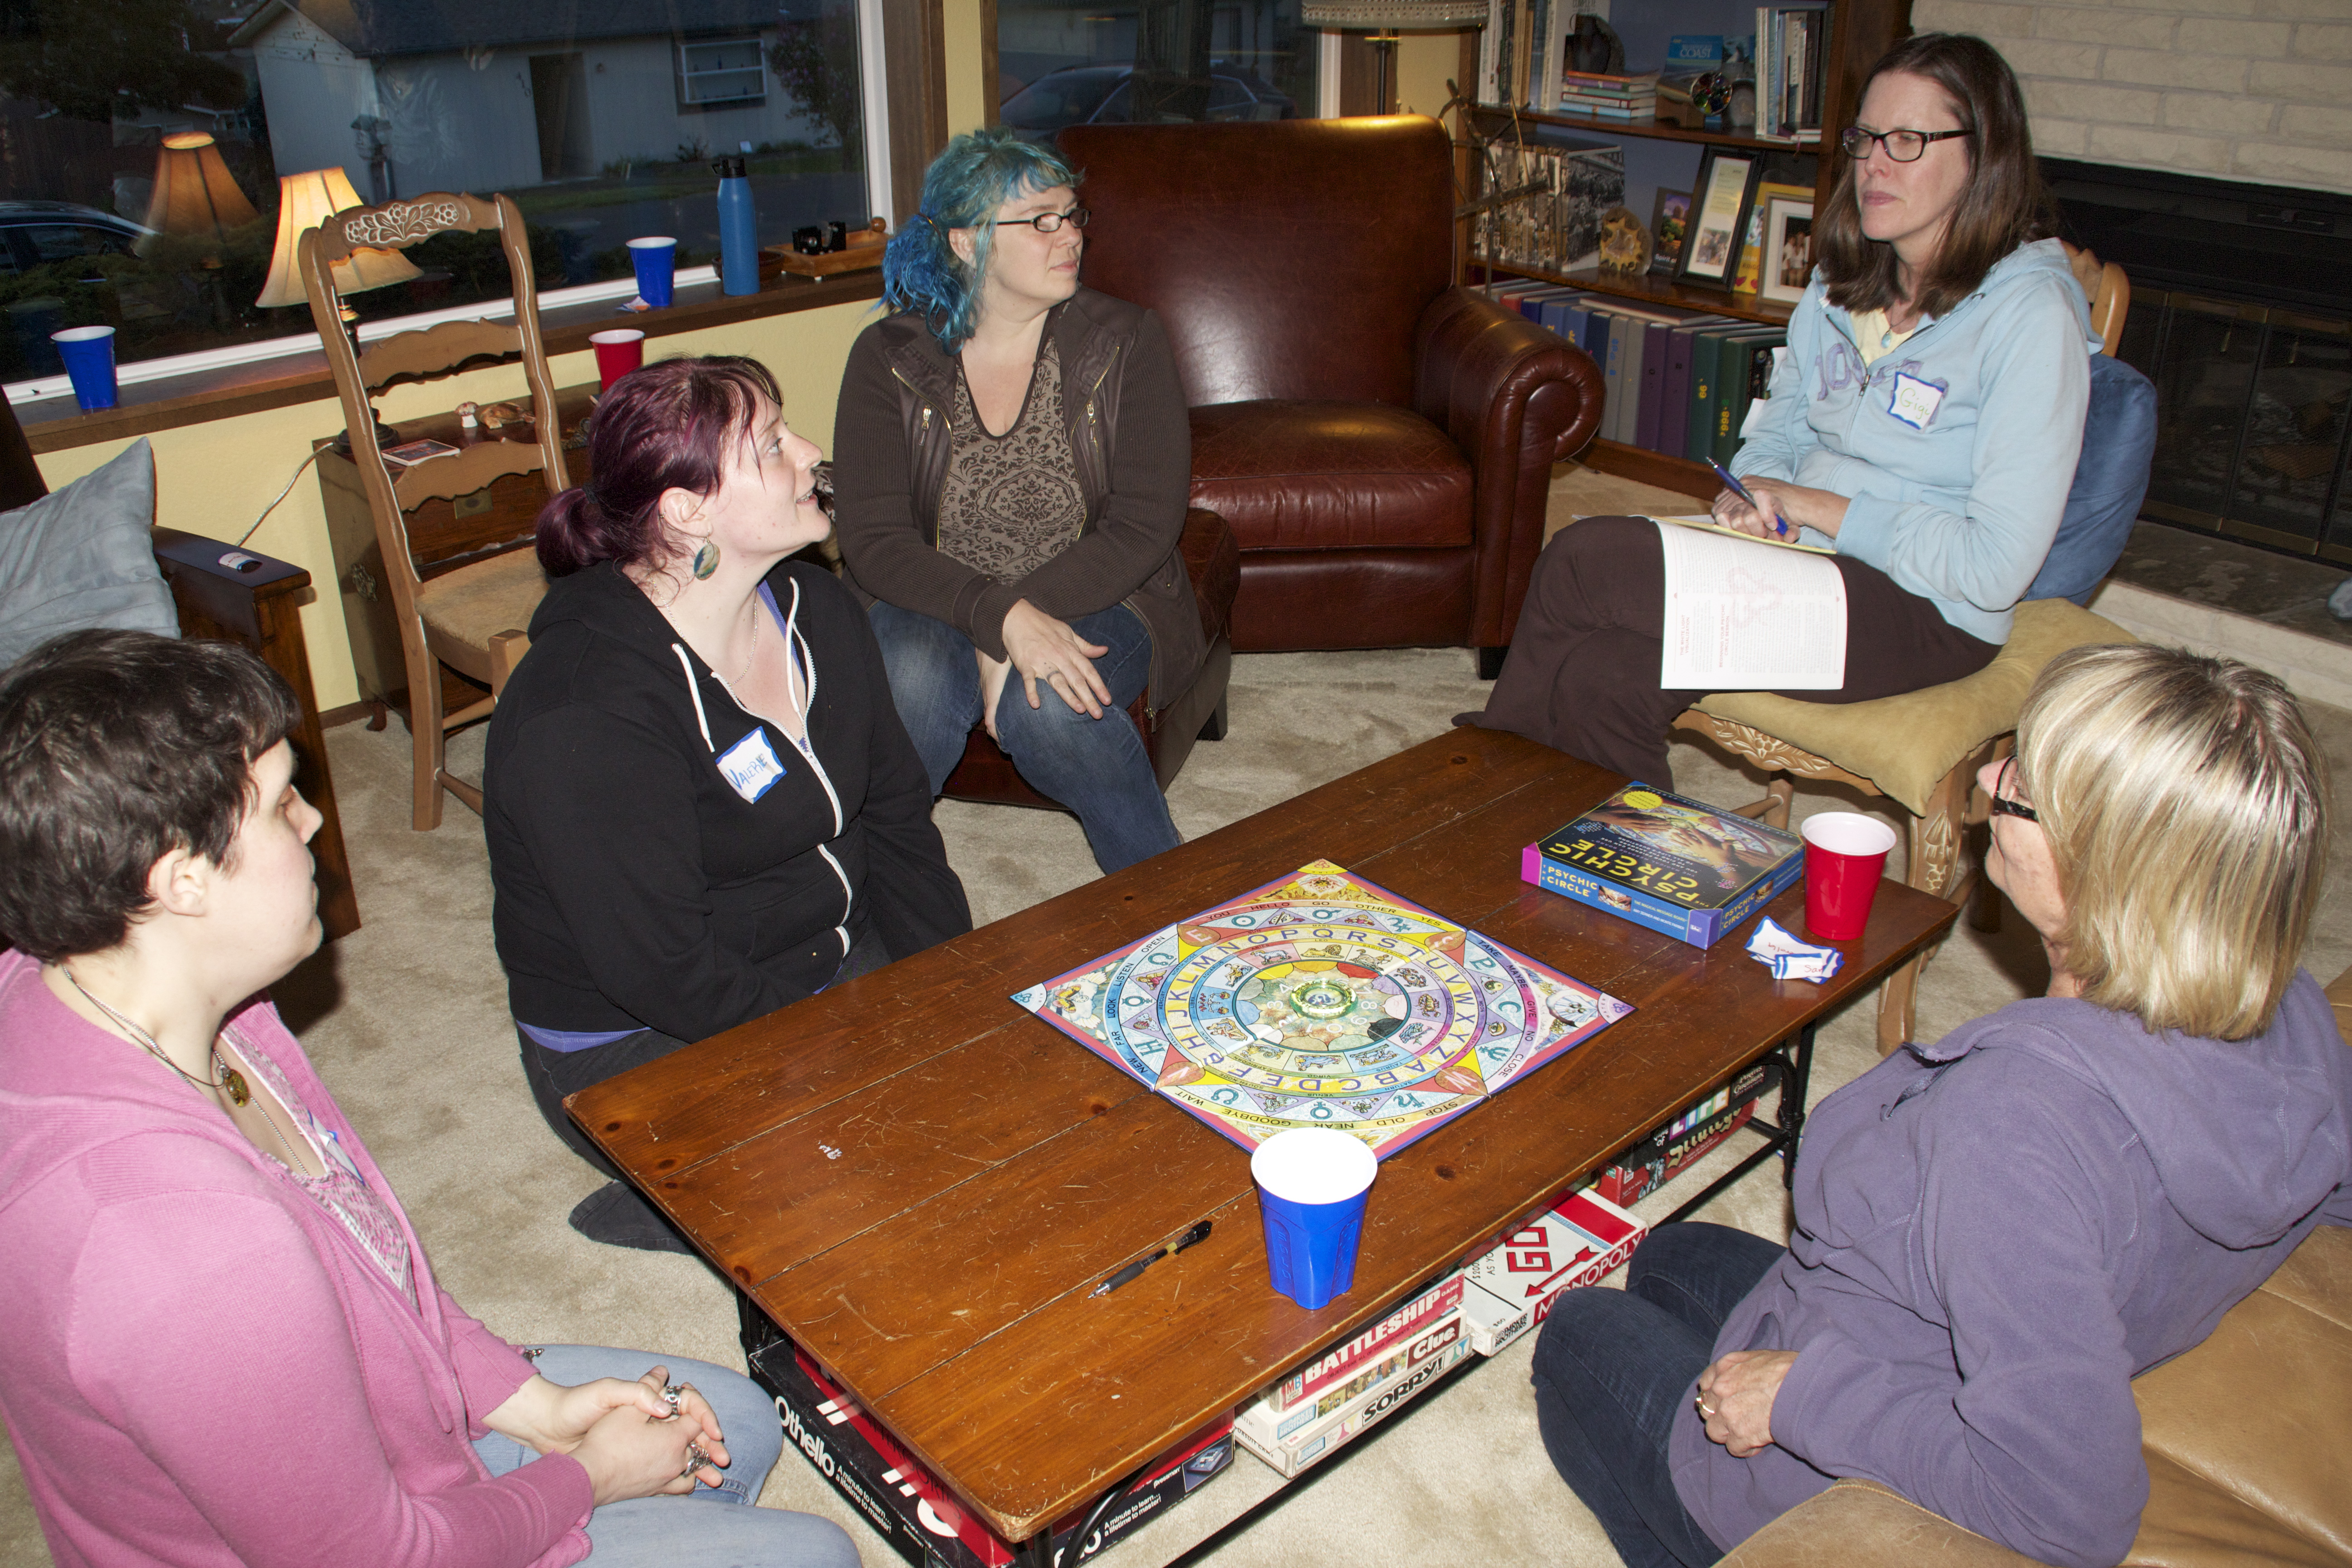 The Group In Living Room Learning How To Play Psychic Circle Game It